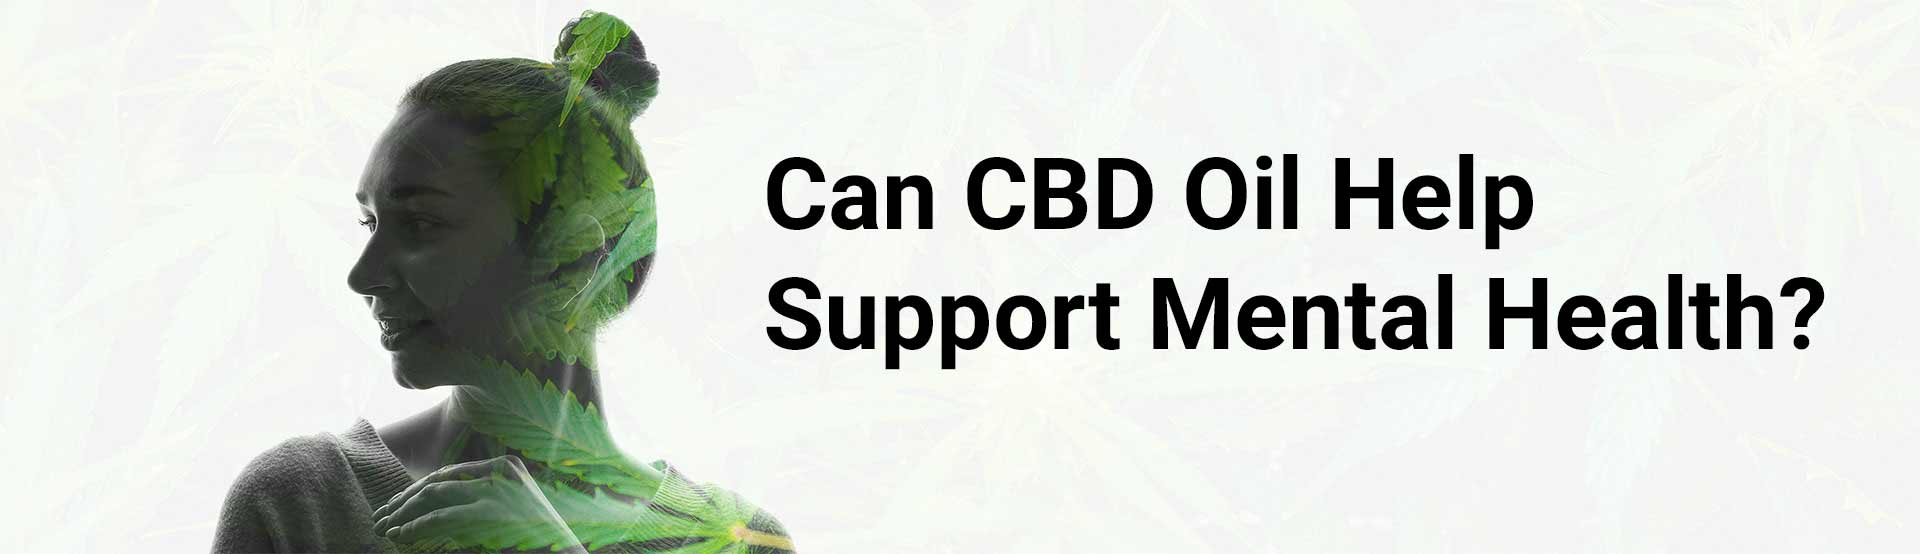 Can CBD Oil Help Support My Mental Health - Banner Image